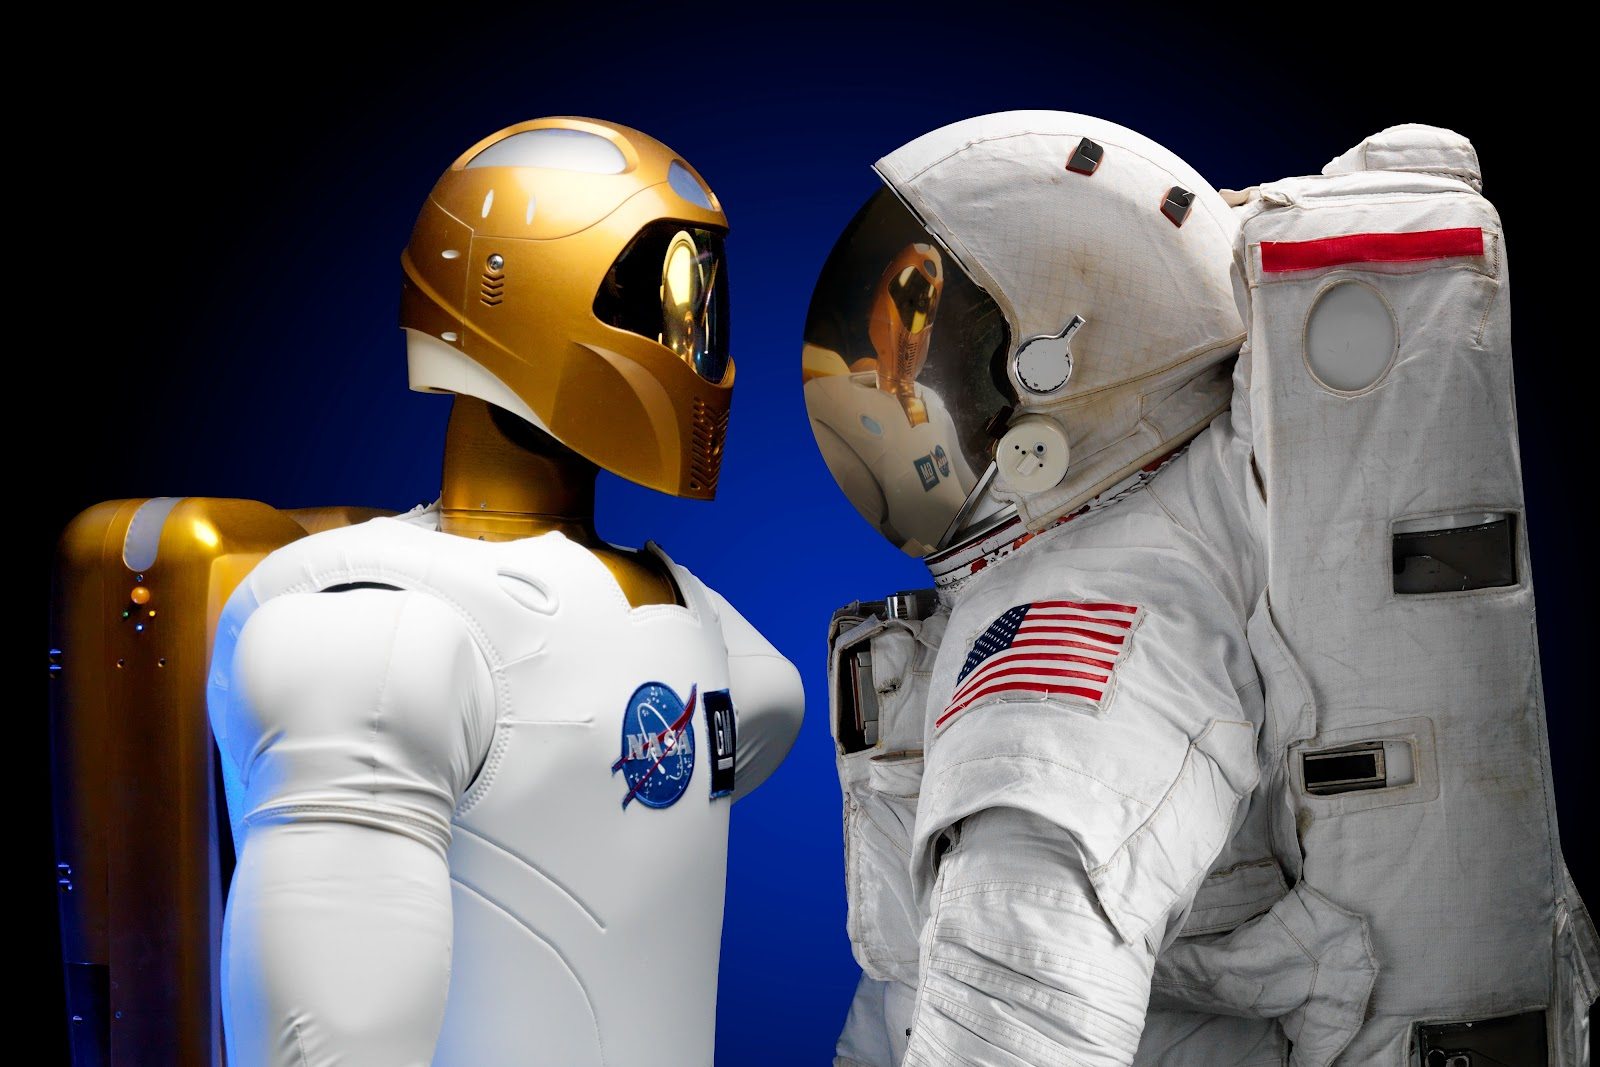 A robot in front of an astronaut, the robot has a NASA logo in its chest